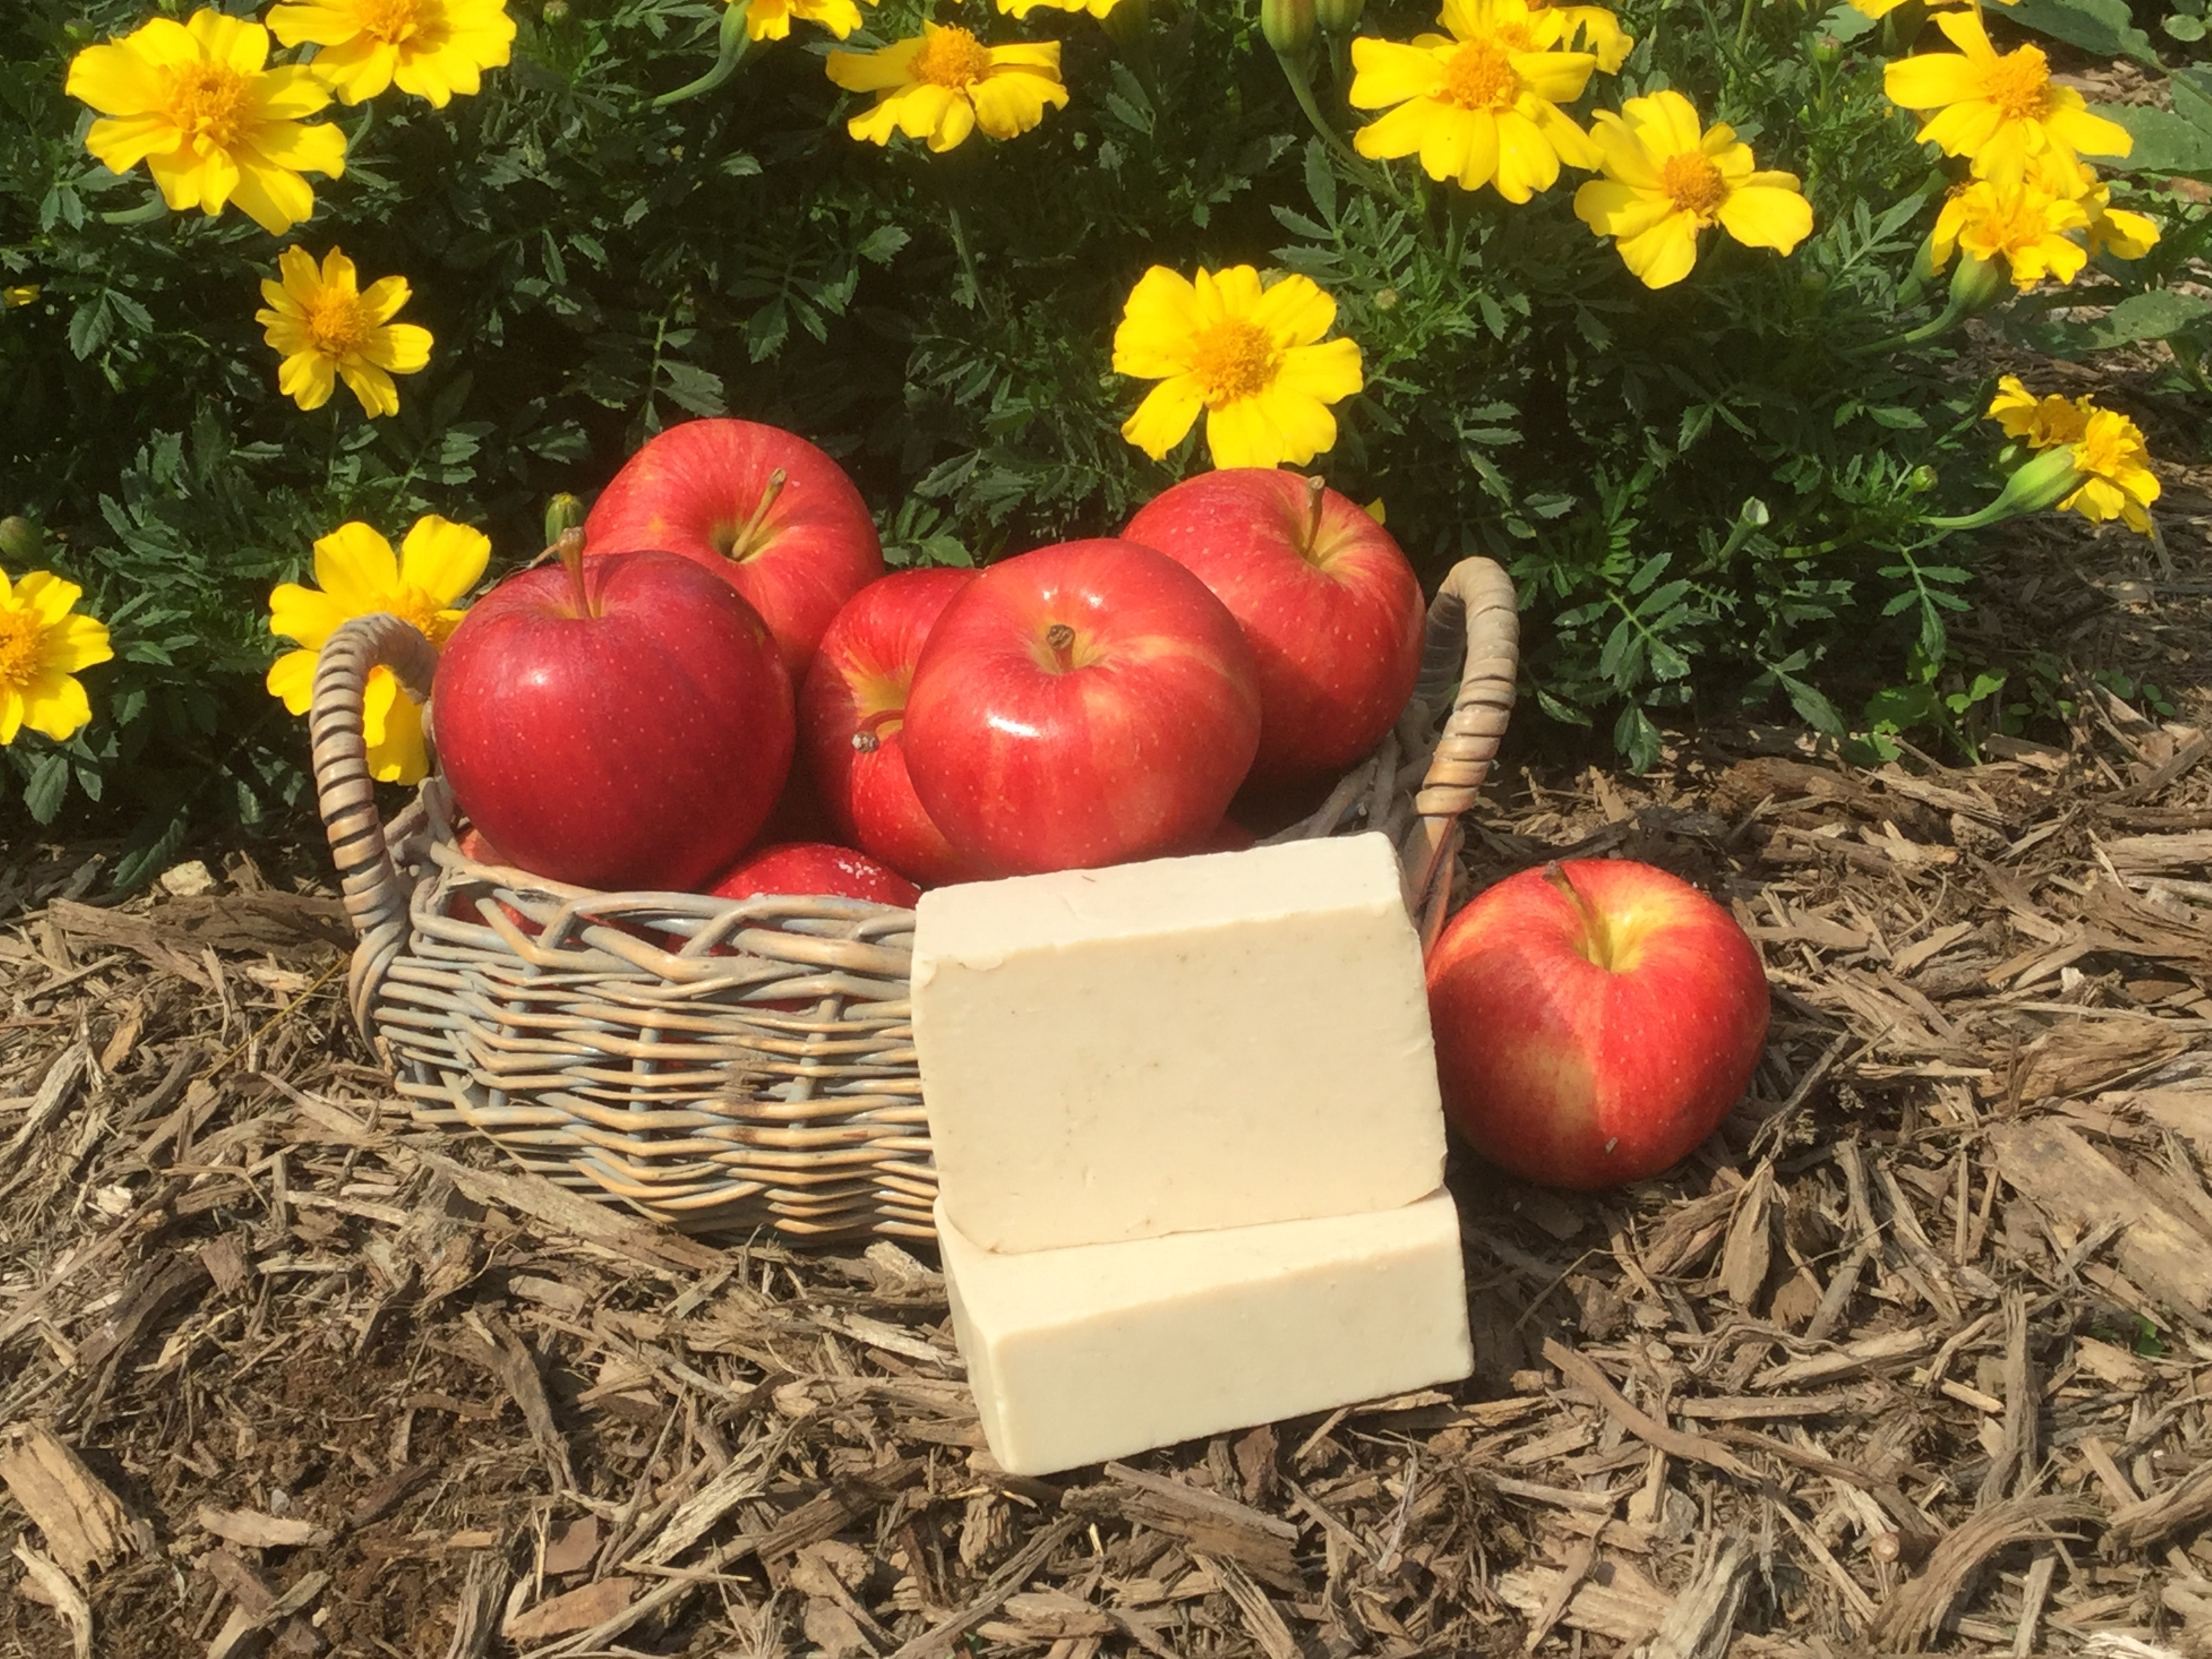 September Soap of the Month - Apple